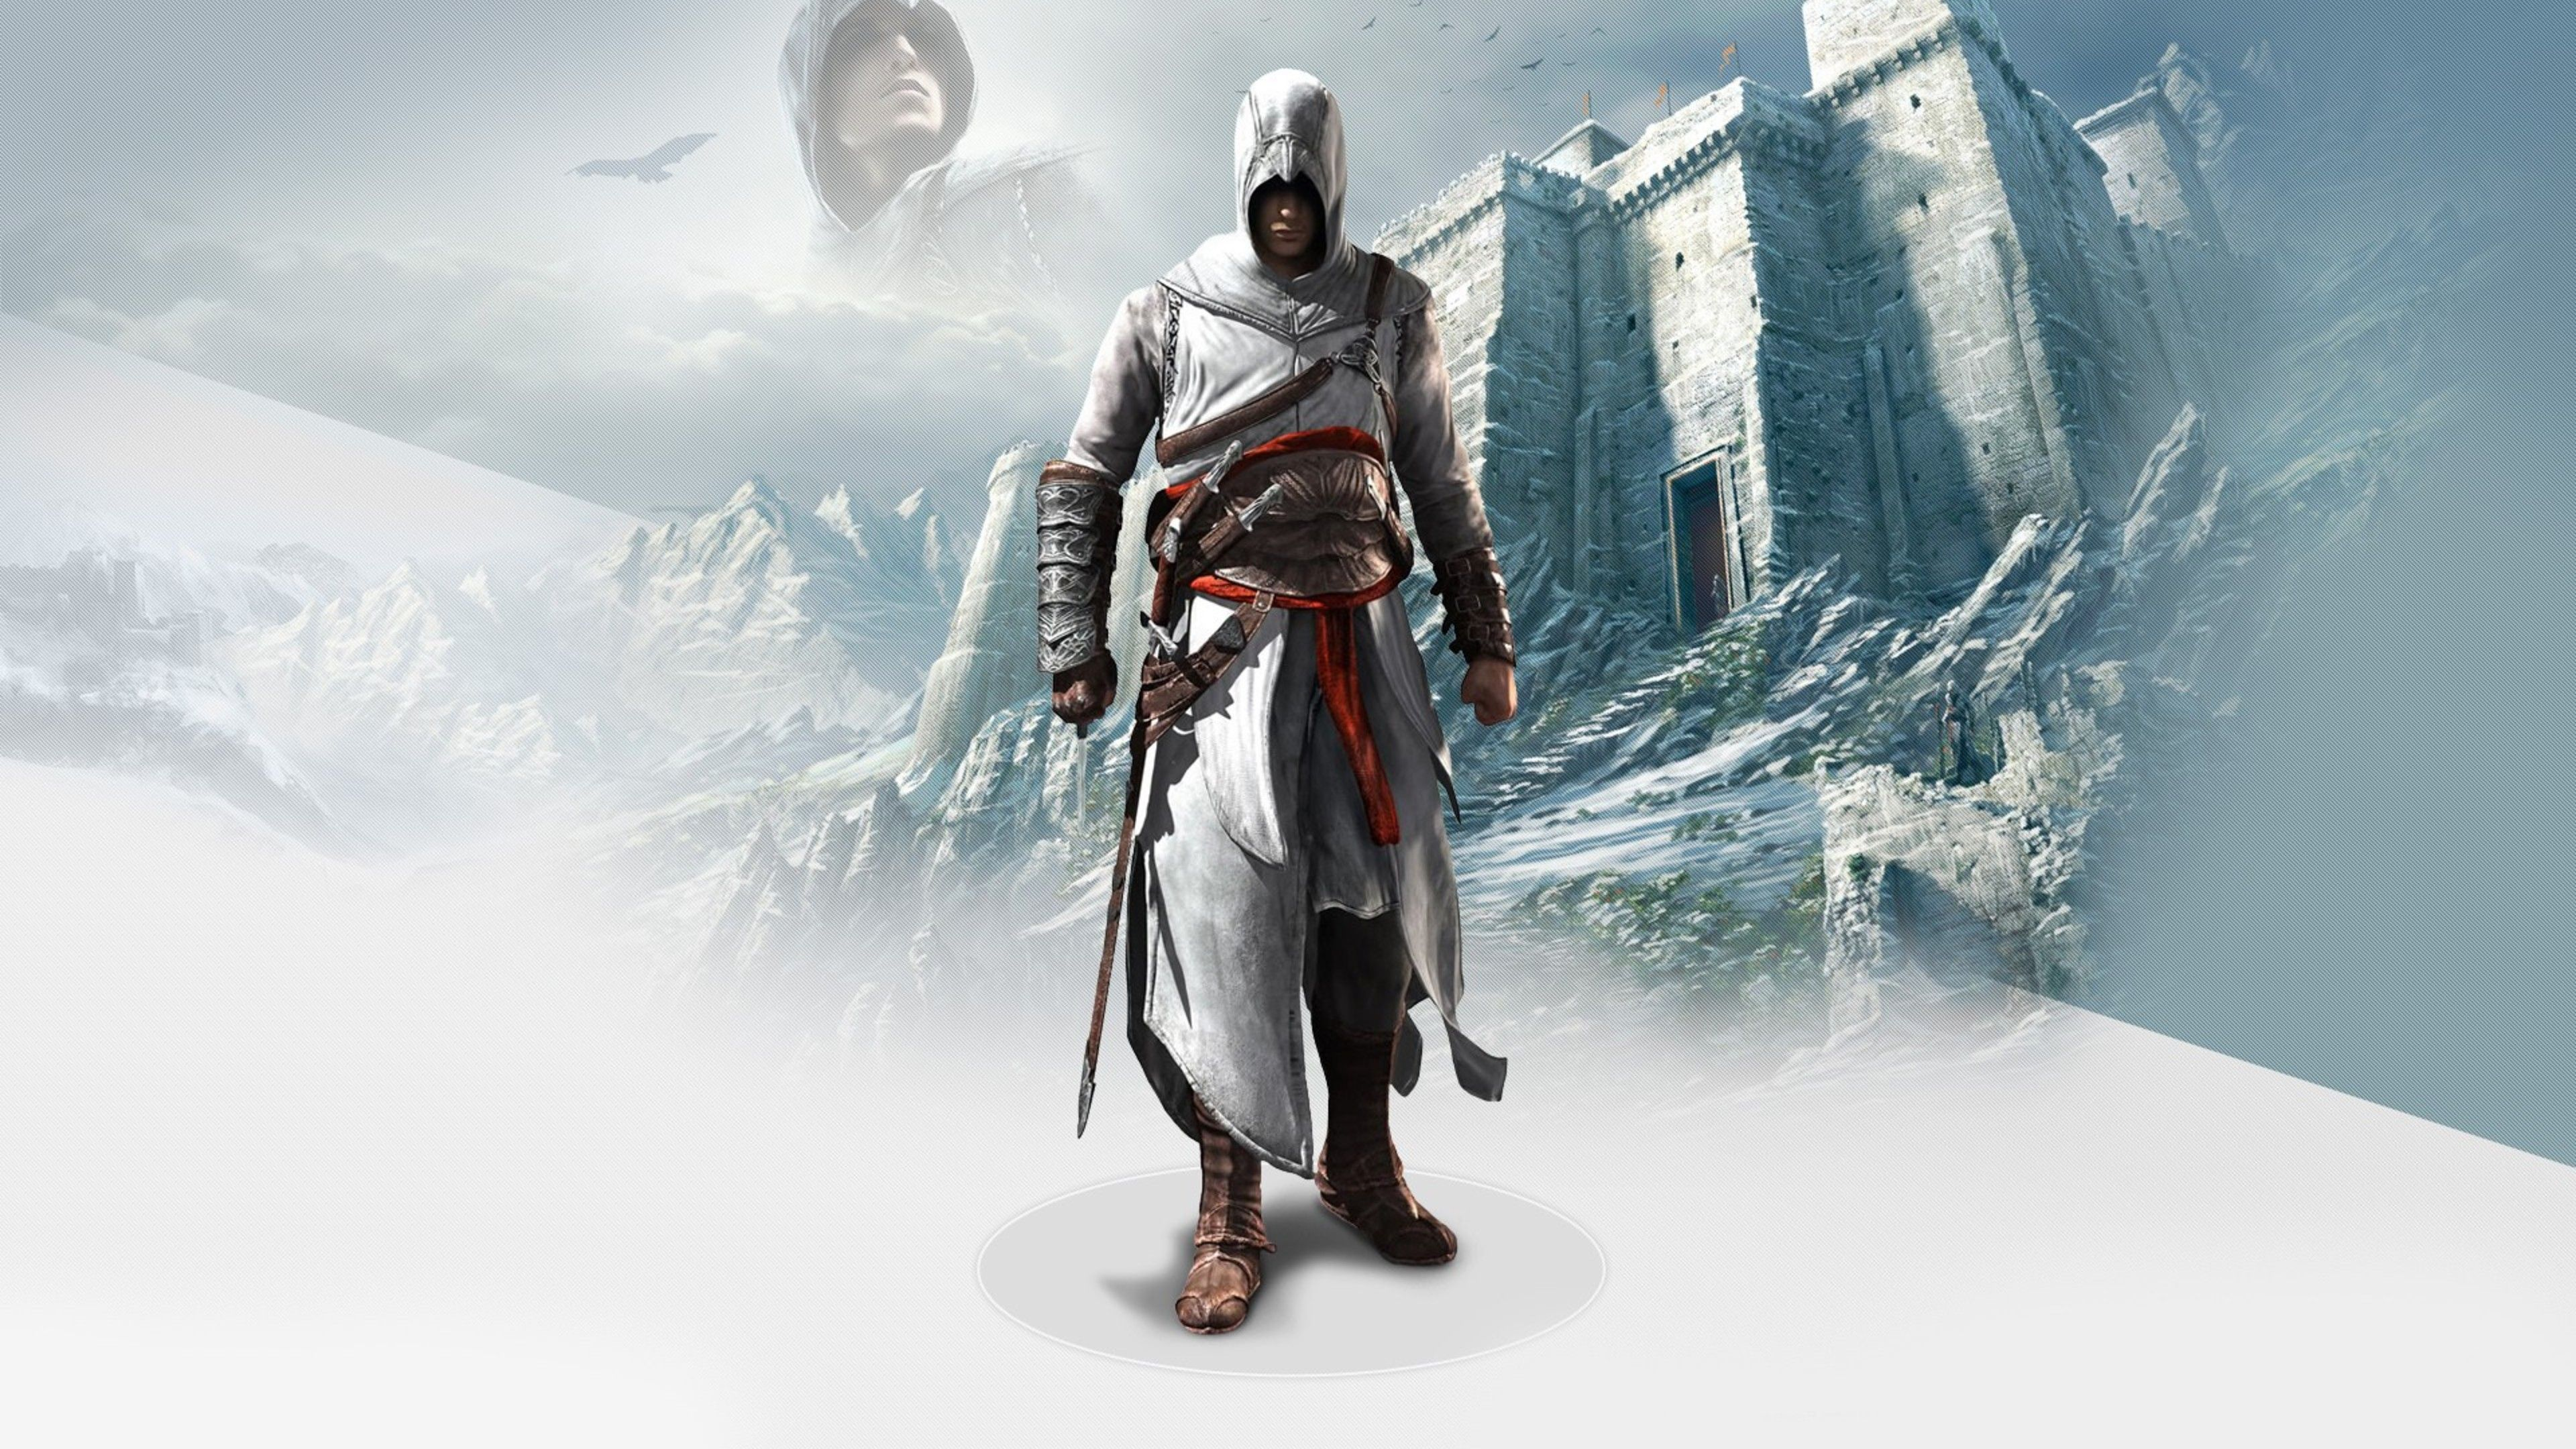 Altair In Assassins Creed 2 4k 4k Hd Wallpapers Assassins Creed 2 Assassins Creed Assassin S Creed Hd